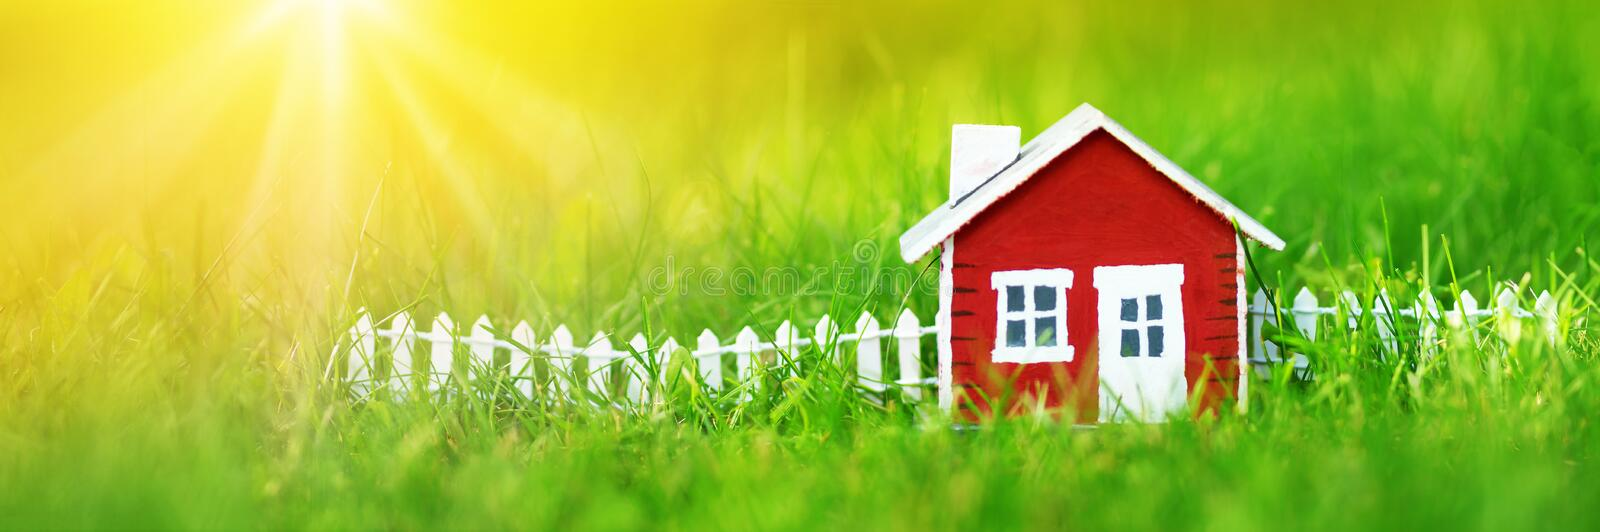 Red wooden house on the grass royalty free stock photo